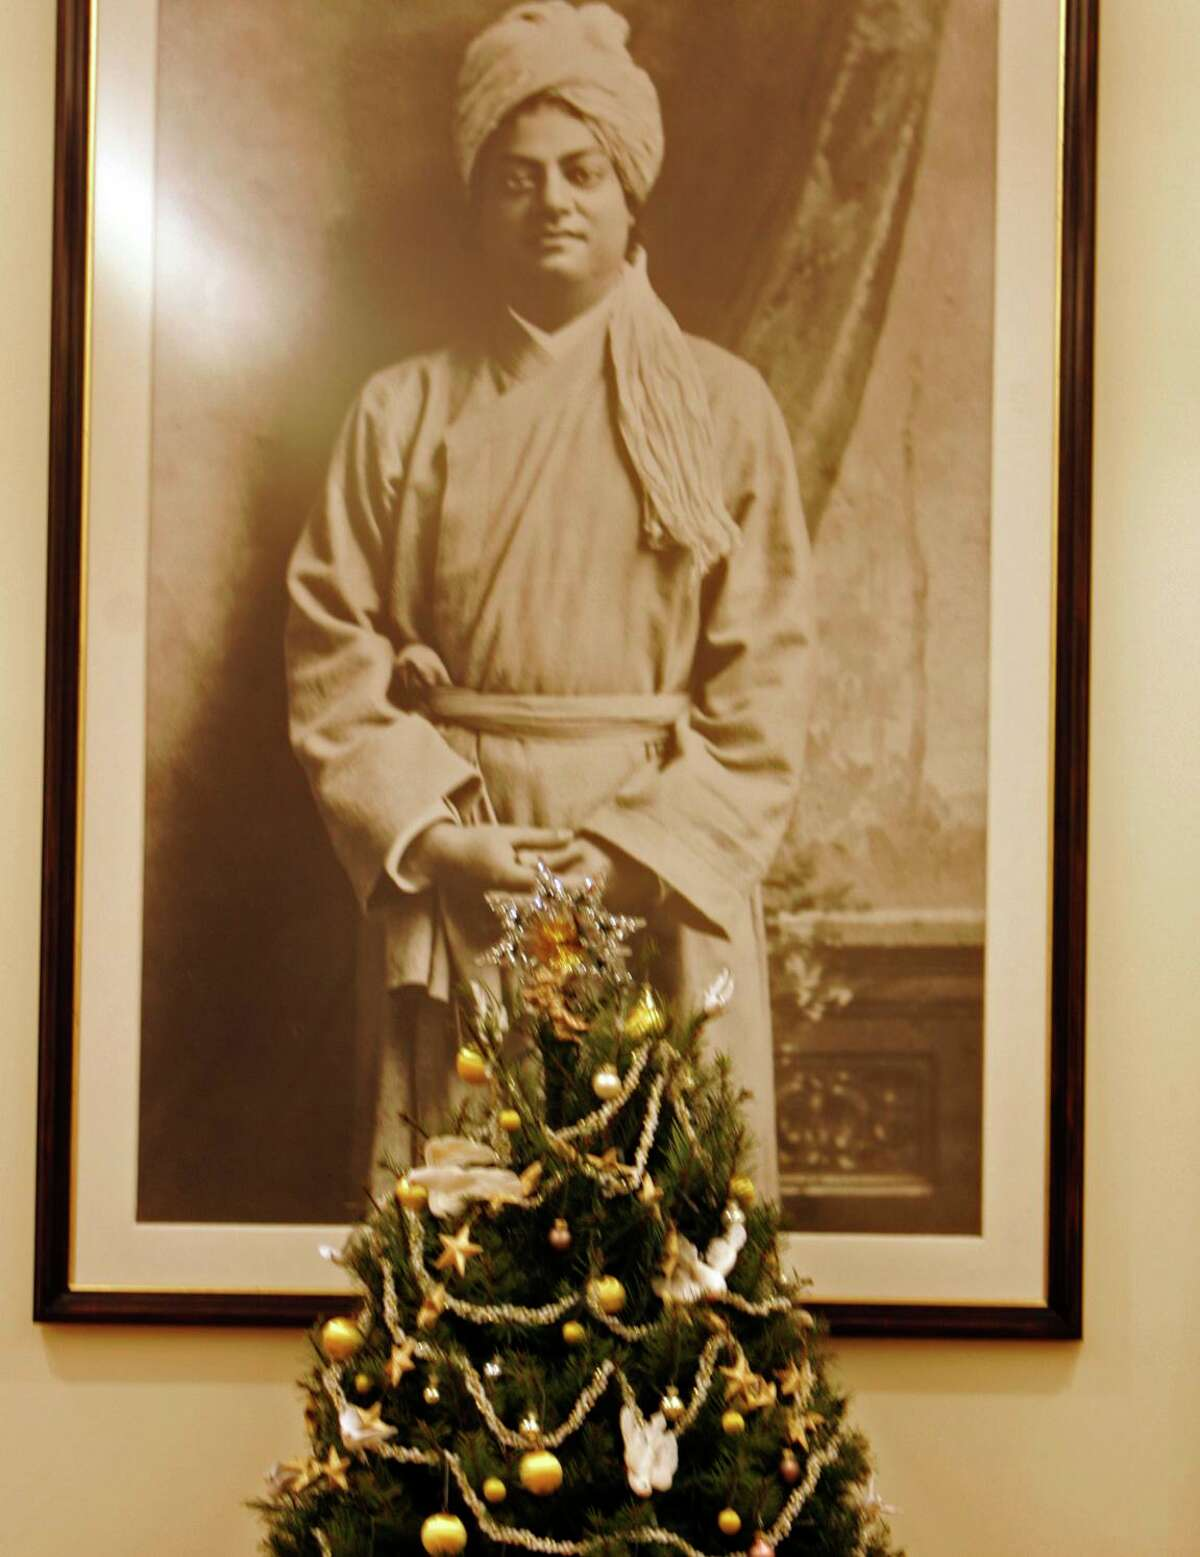 A photograph of Swami Vivekananda hangs behind a Christmas tree in 2005 at the Vedanta Society temple on Vallejo Street.